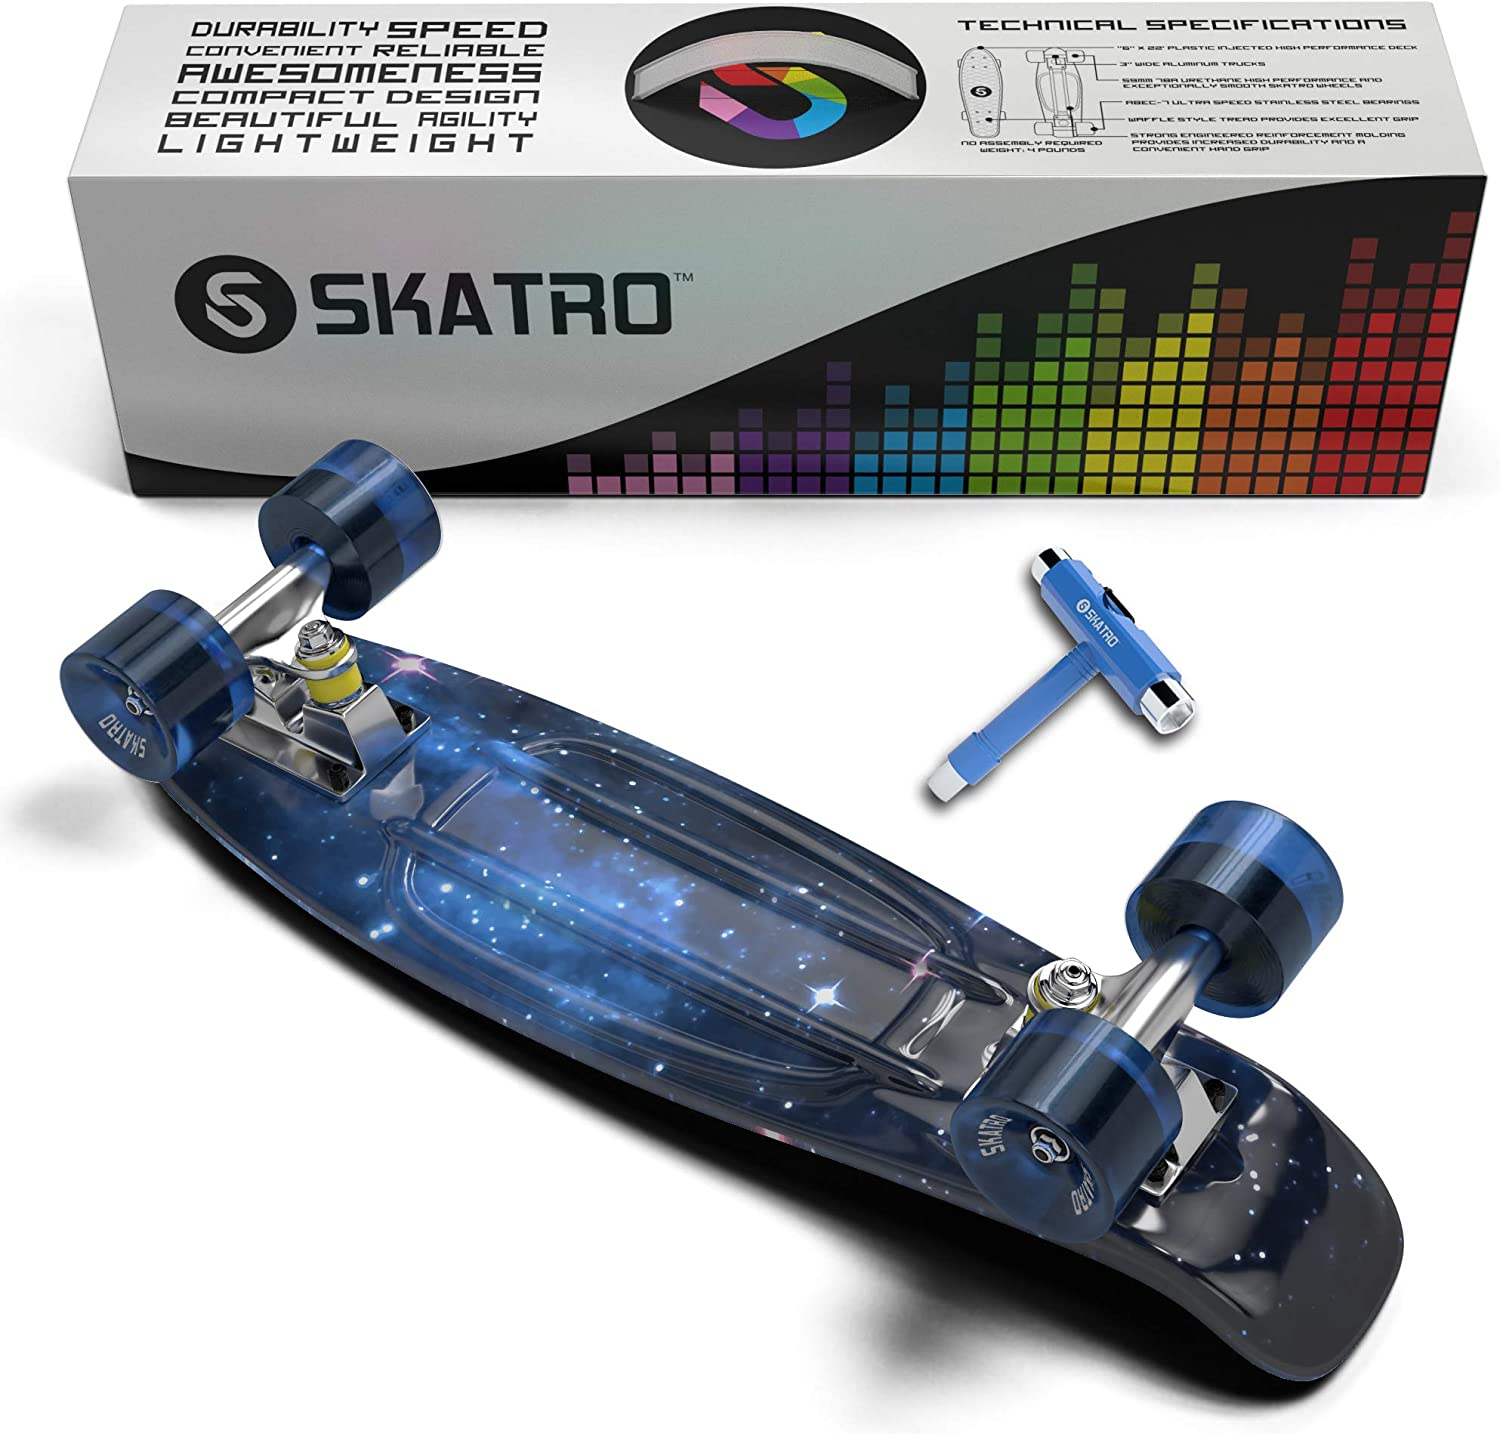 skatro - Mini Cruiser Skateboard - 2